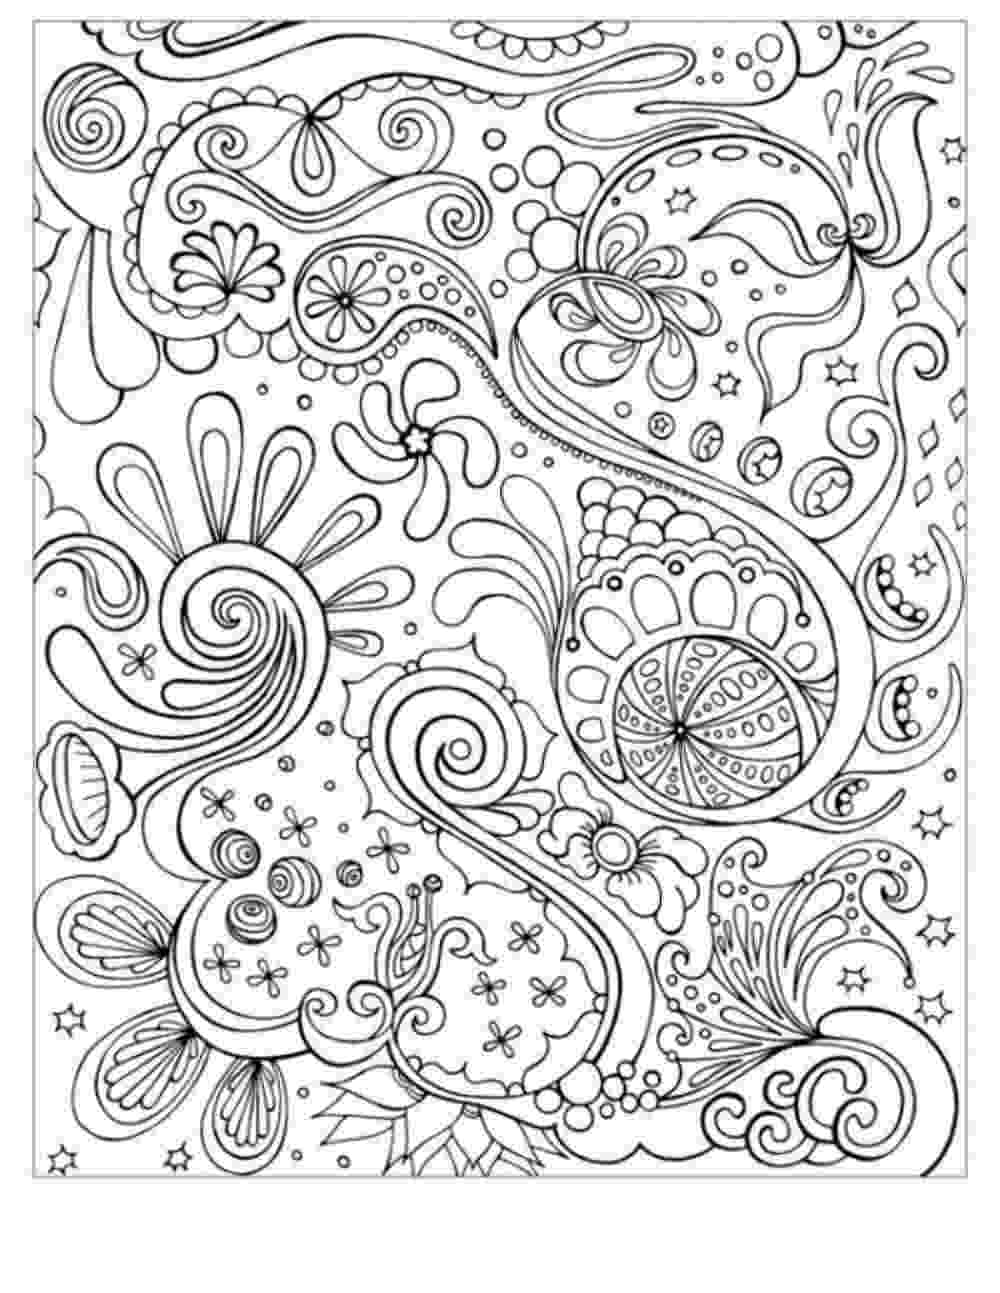 free colouring pages to print for adults psychedelic coloring pages to download and print for free pages free for to adults print colouring